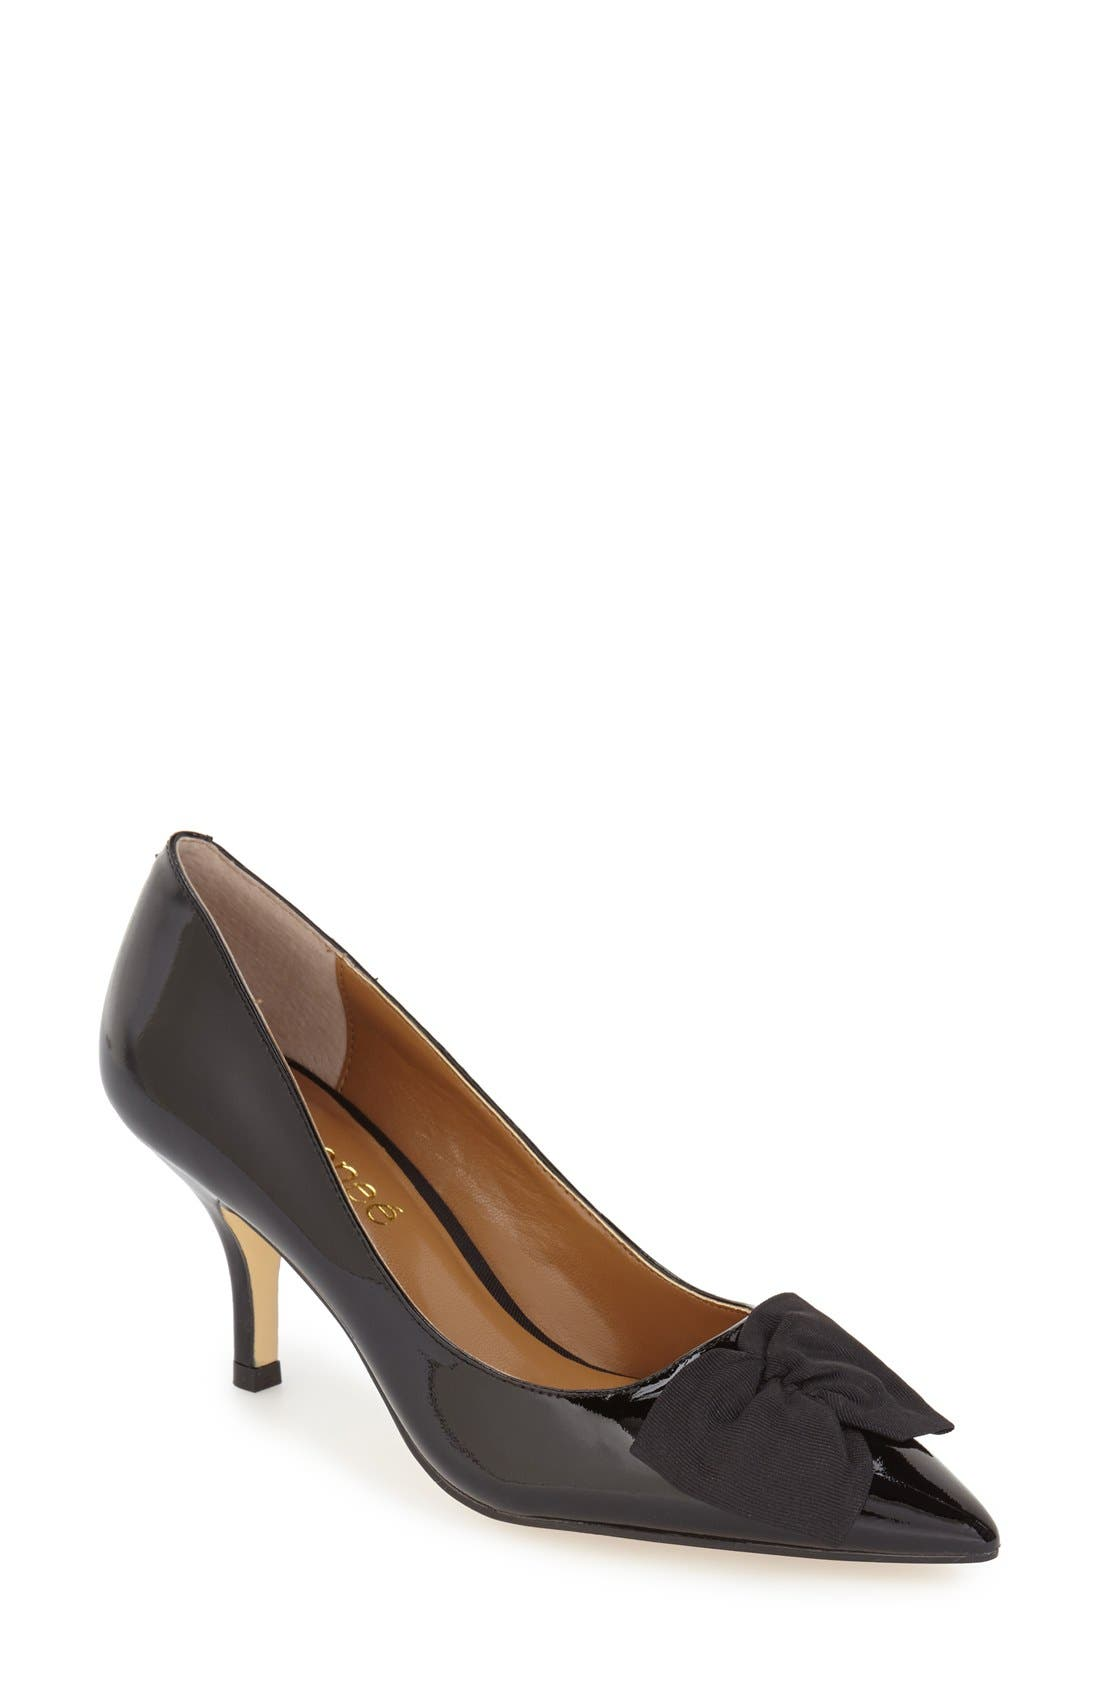 Main Image - J. Reneé 'Camley' Pointy Toe Bow Pump (Women)